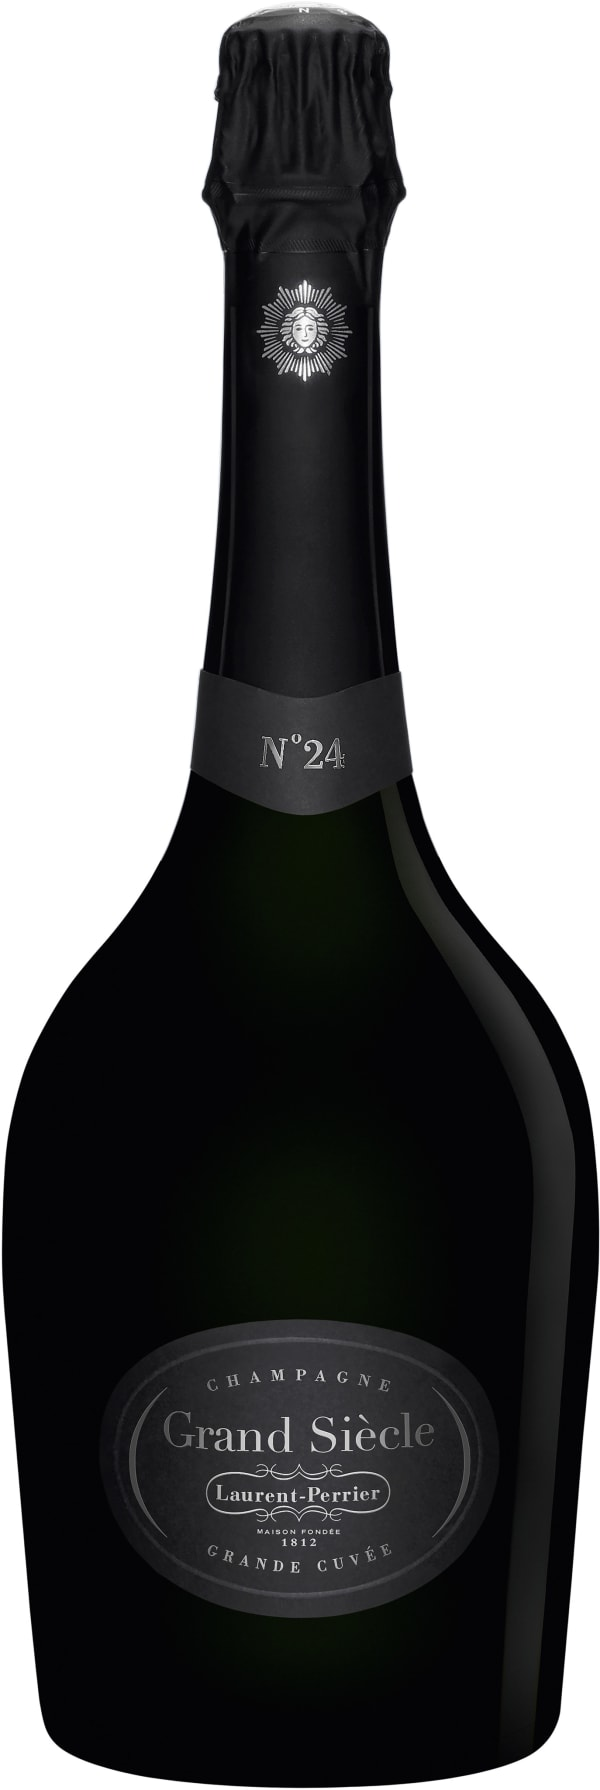 Laurent-Perrier Grand Siècle Champagne Brut